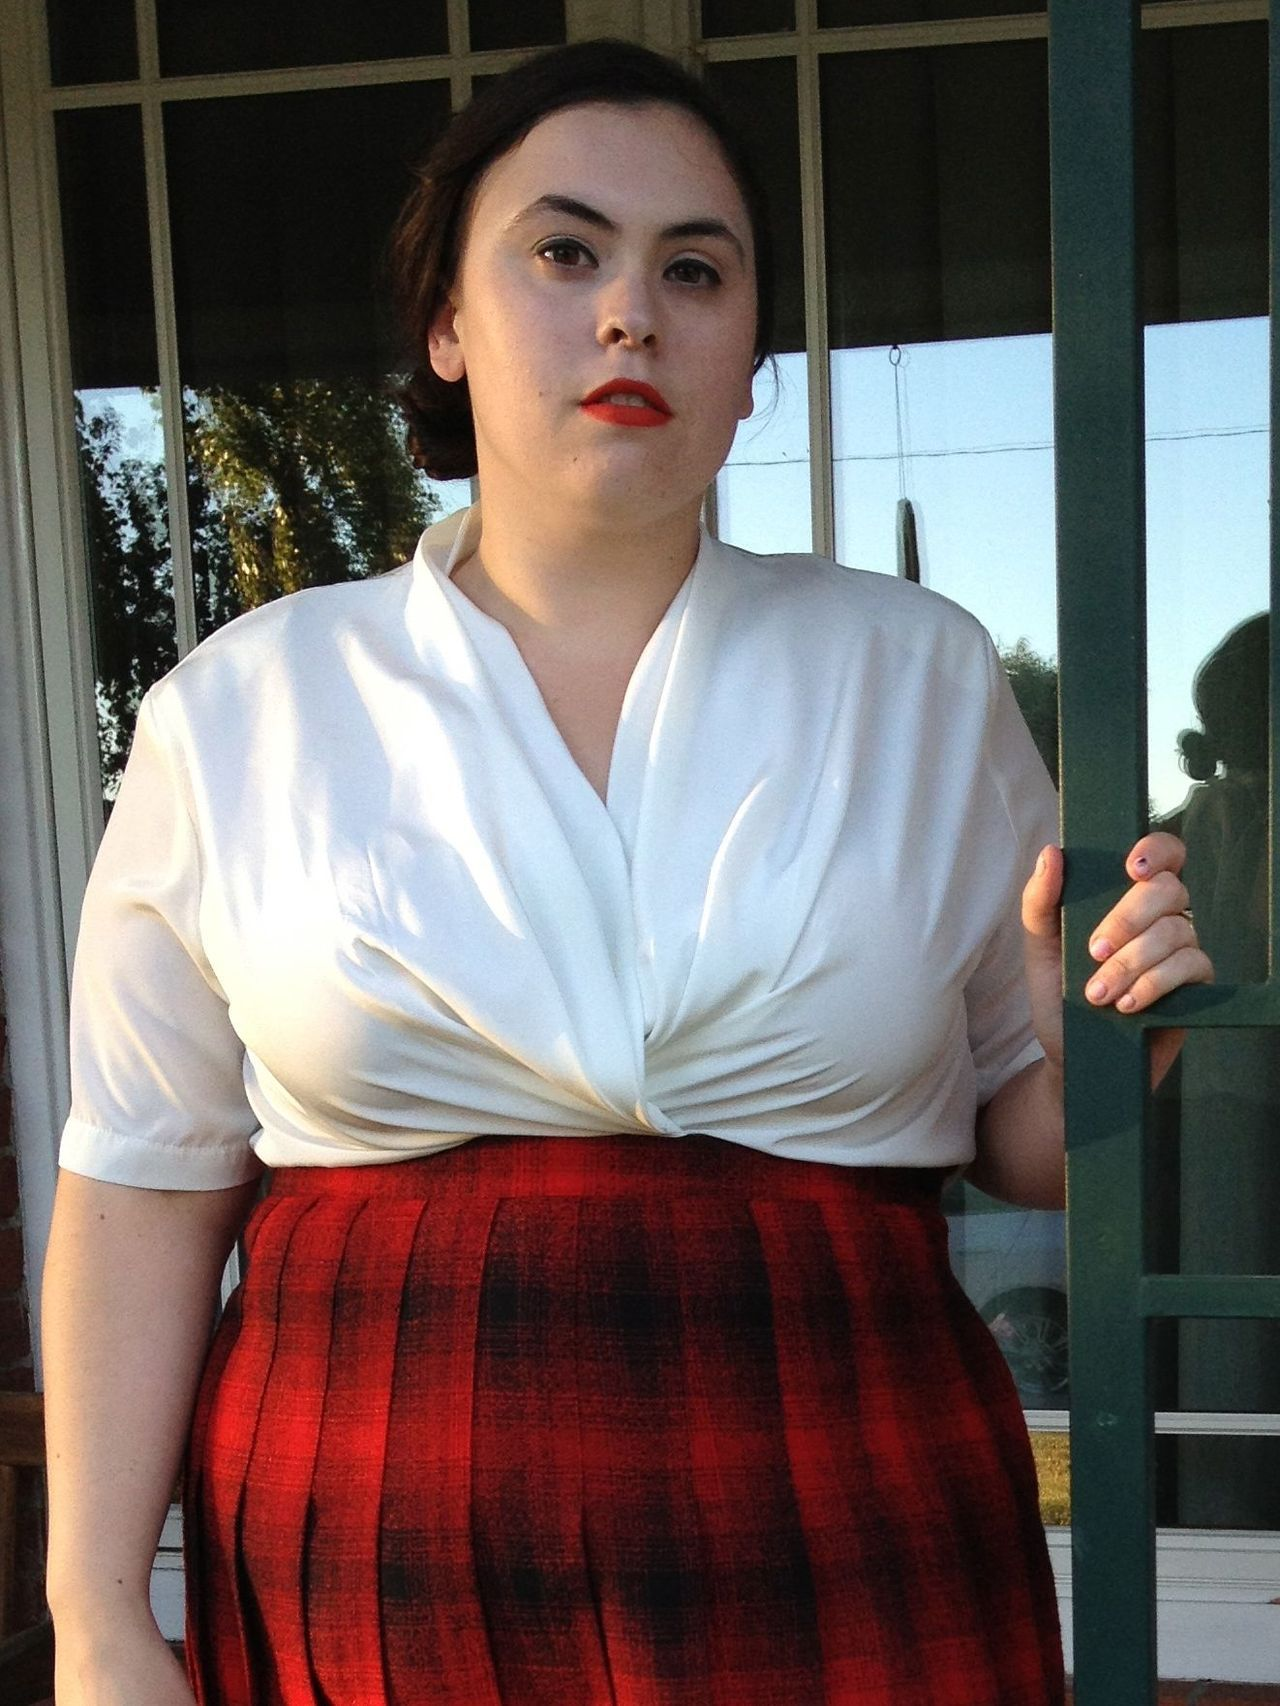 New Shop Item: Plus Size Vintage Drape Front Blouse Size 20 $20 / FREE SHIPPING! (US Domestic)